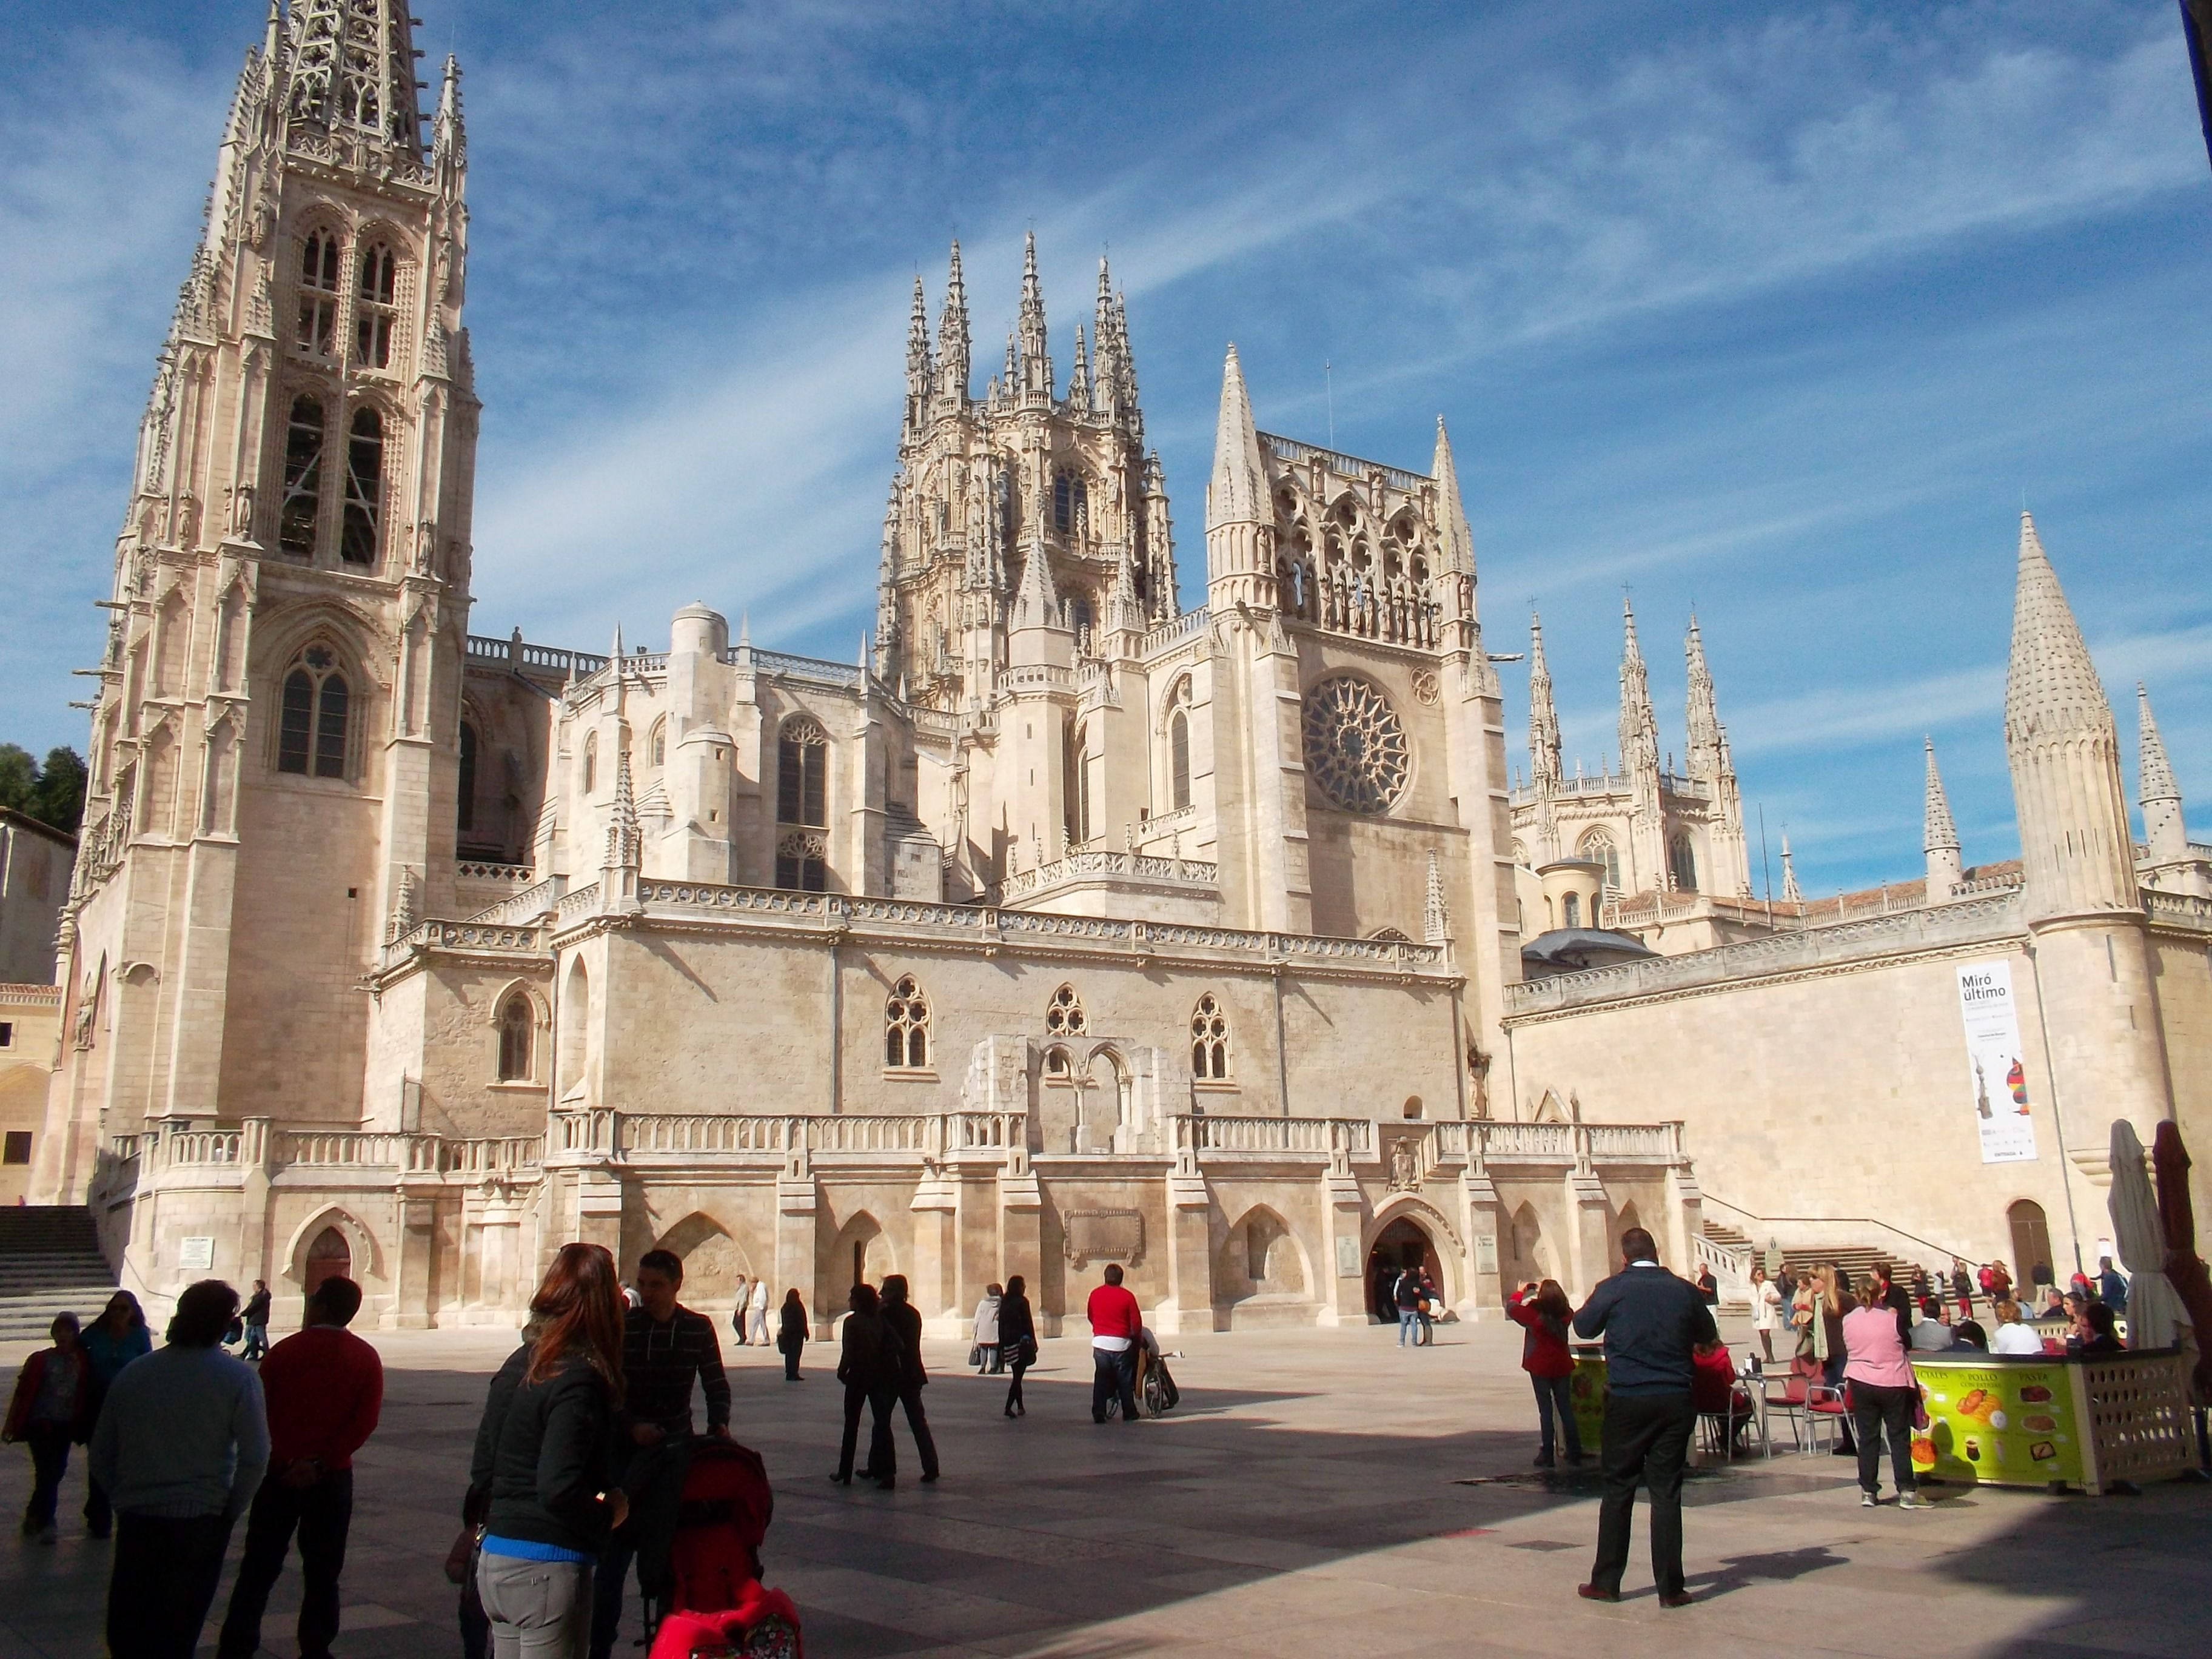 1st stage of journey complete, nice to end at a cathedral, Burgos.